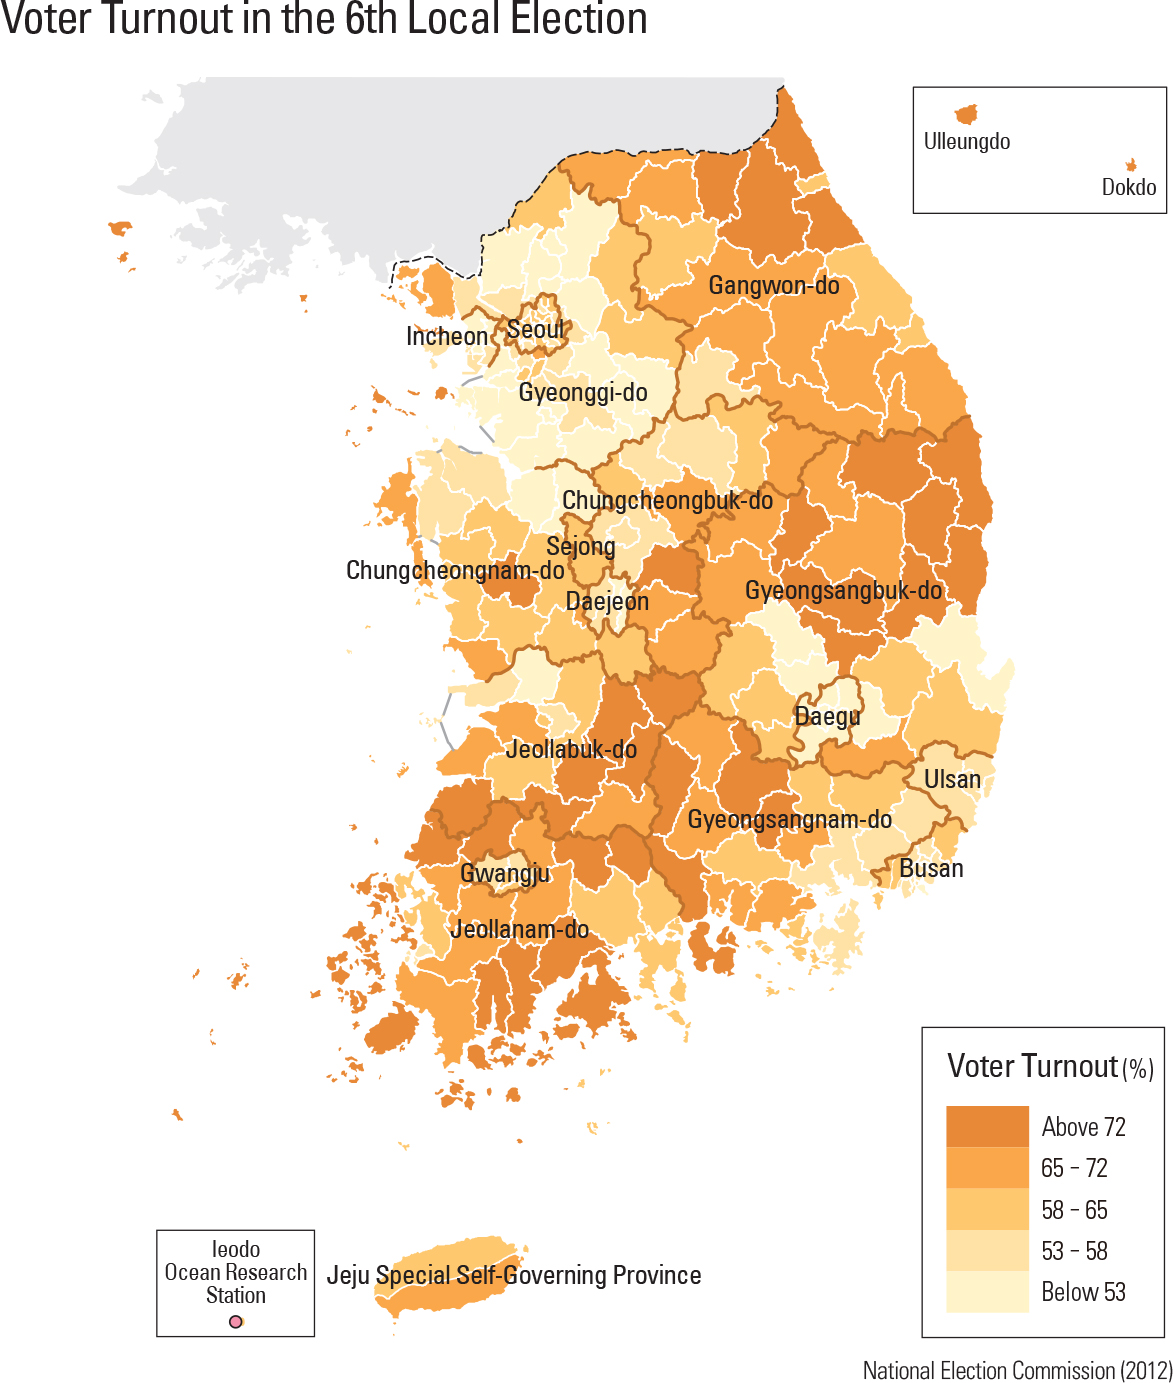 Voter Turnout in the 6th Local Election